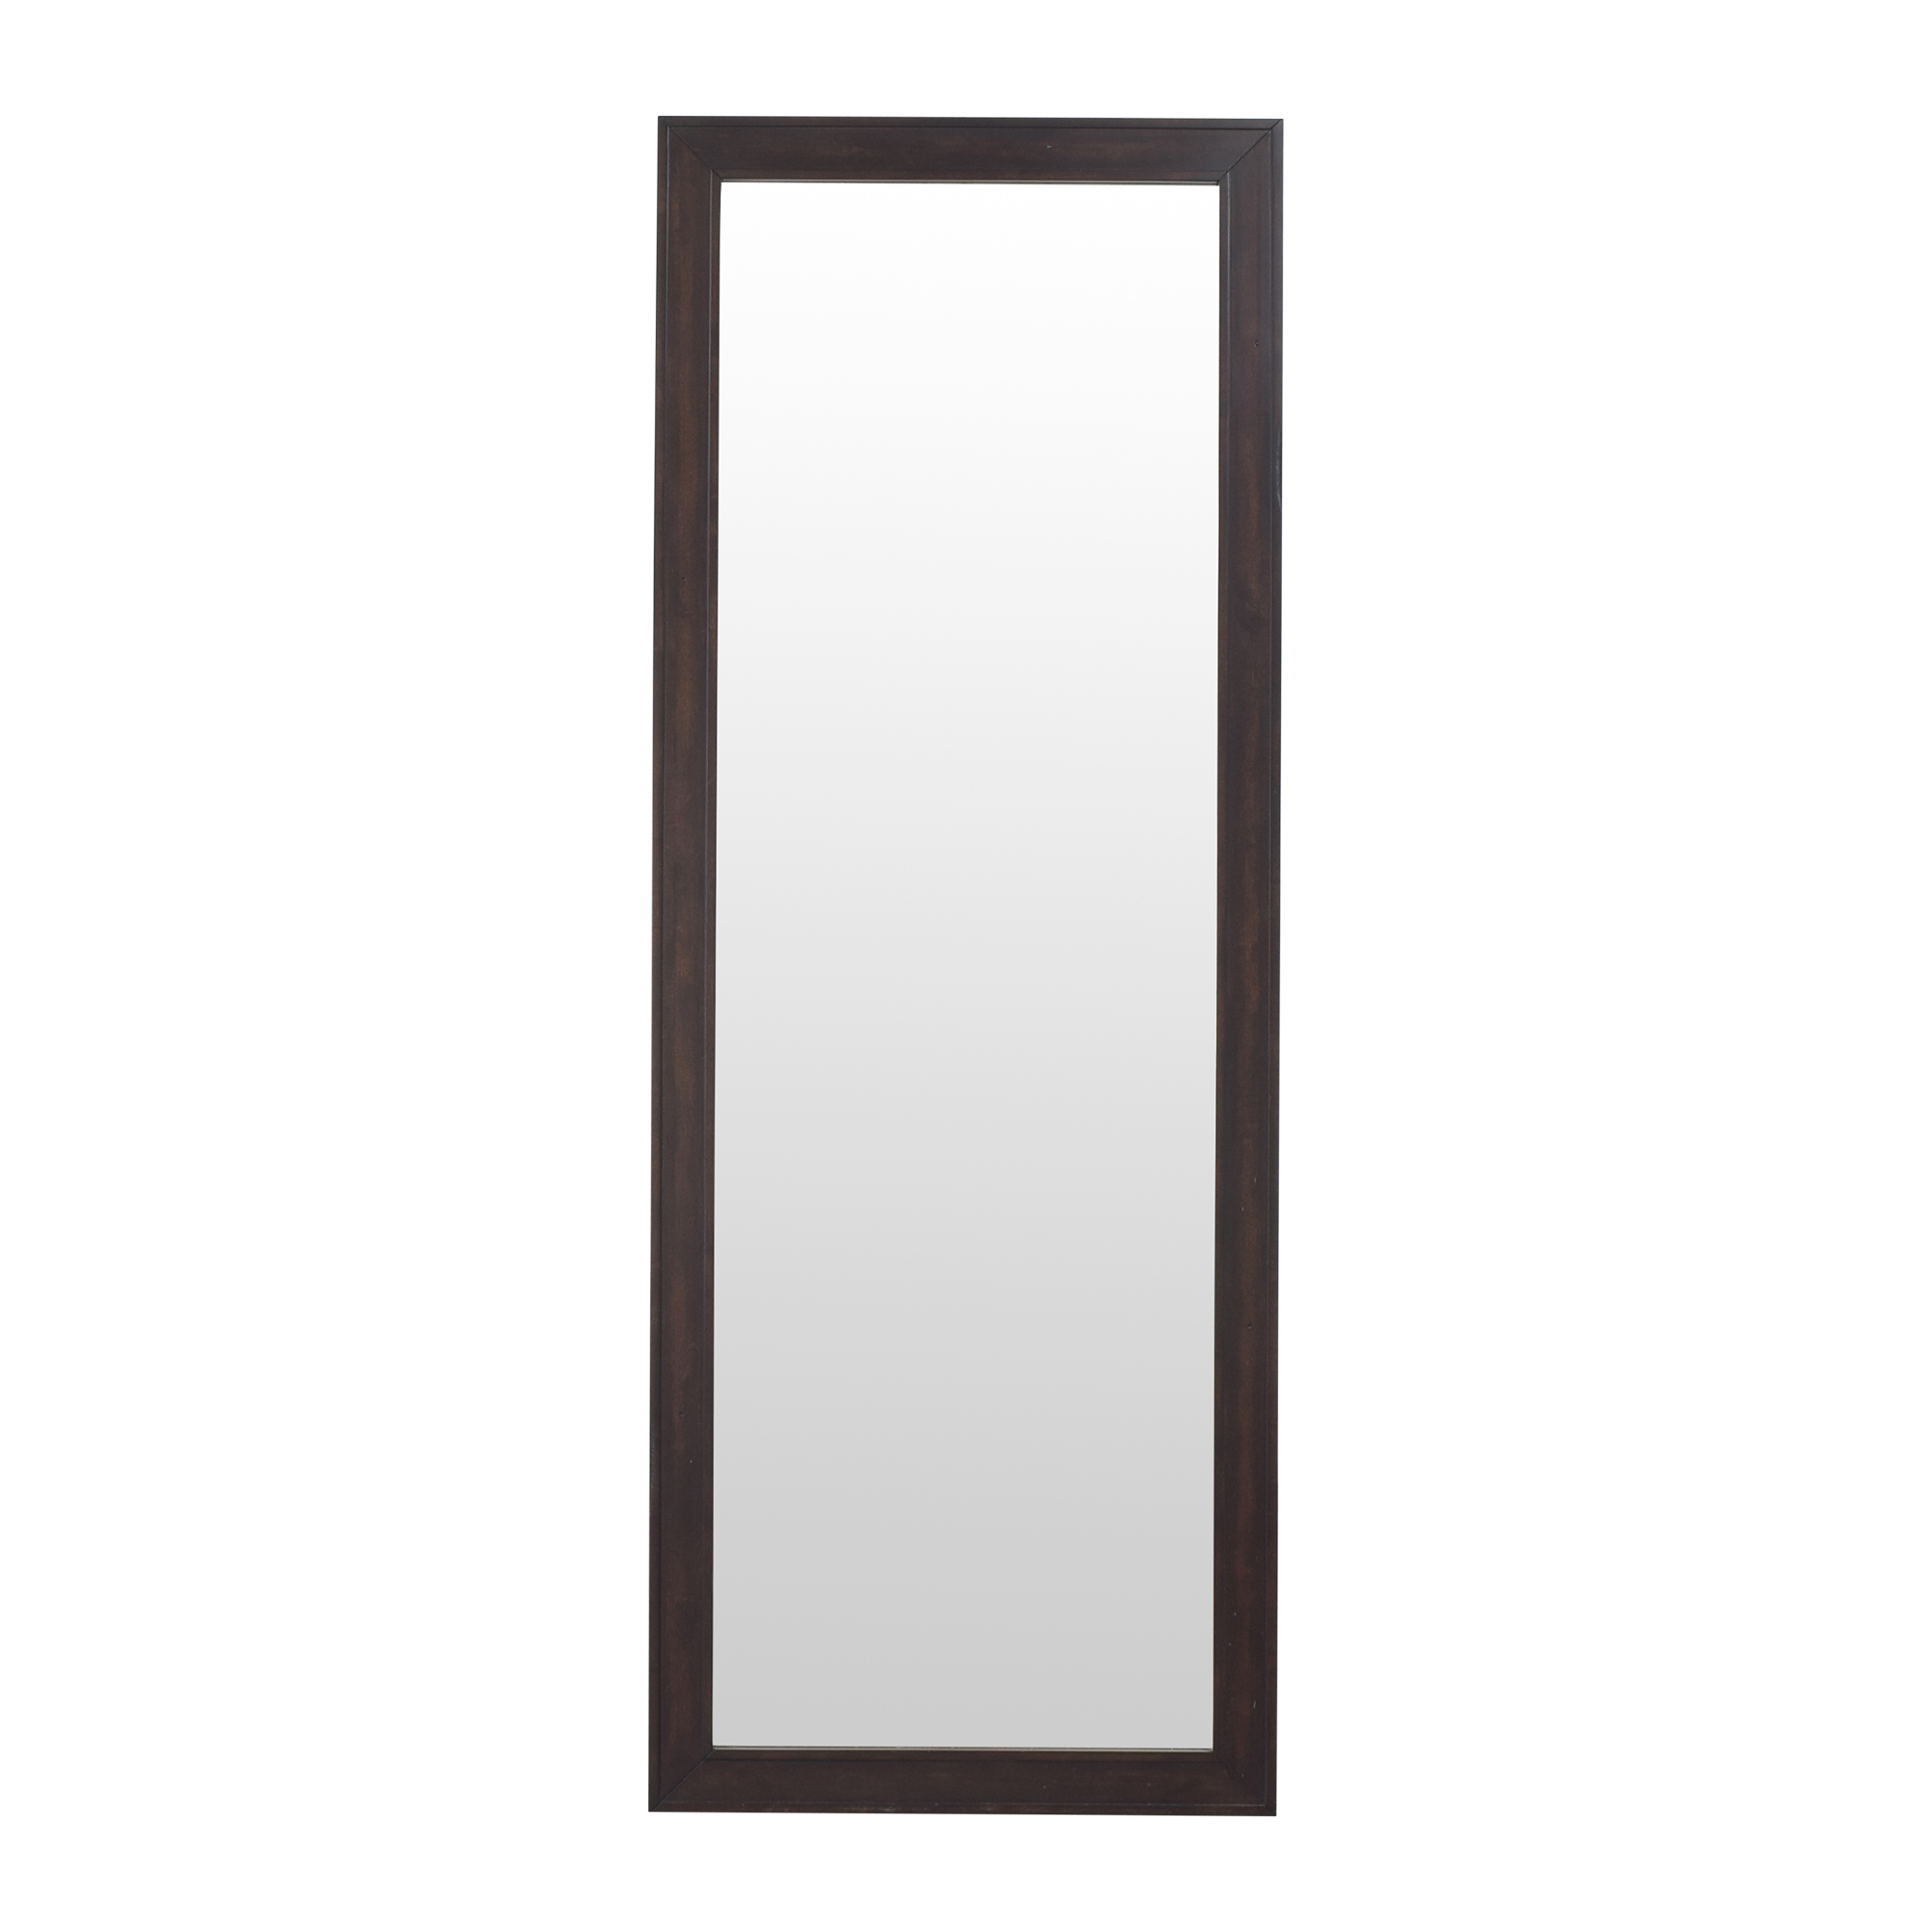 Pottery Barn Pottery Barn Classic Rectangular Floor Mirror used